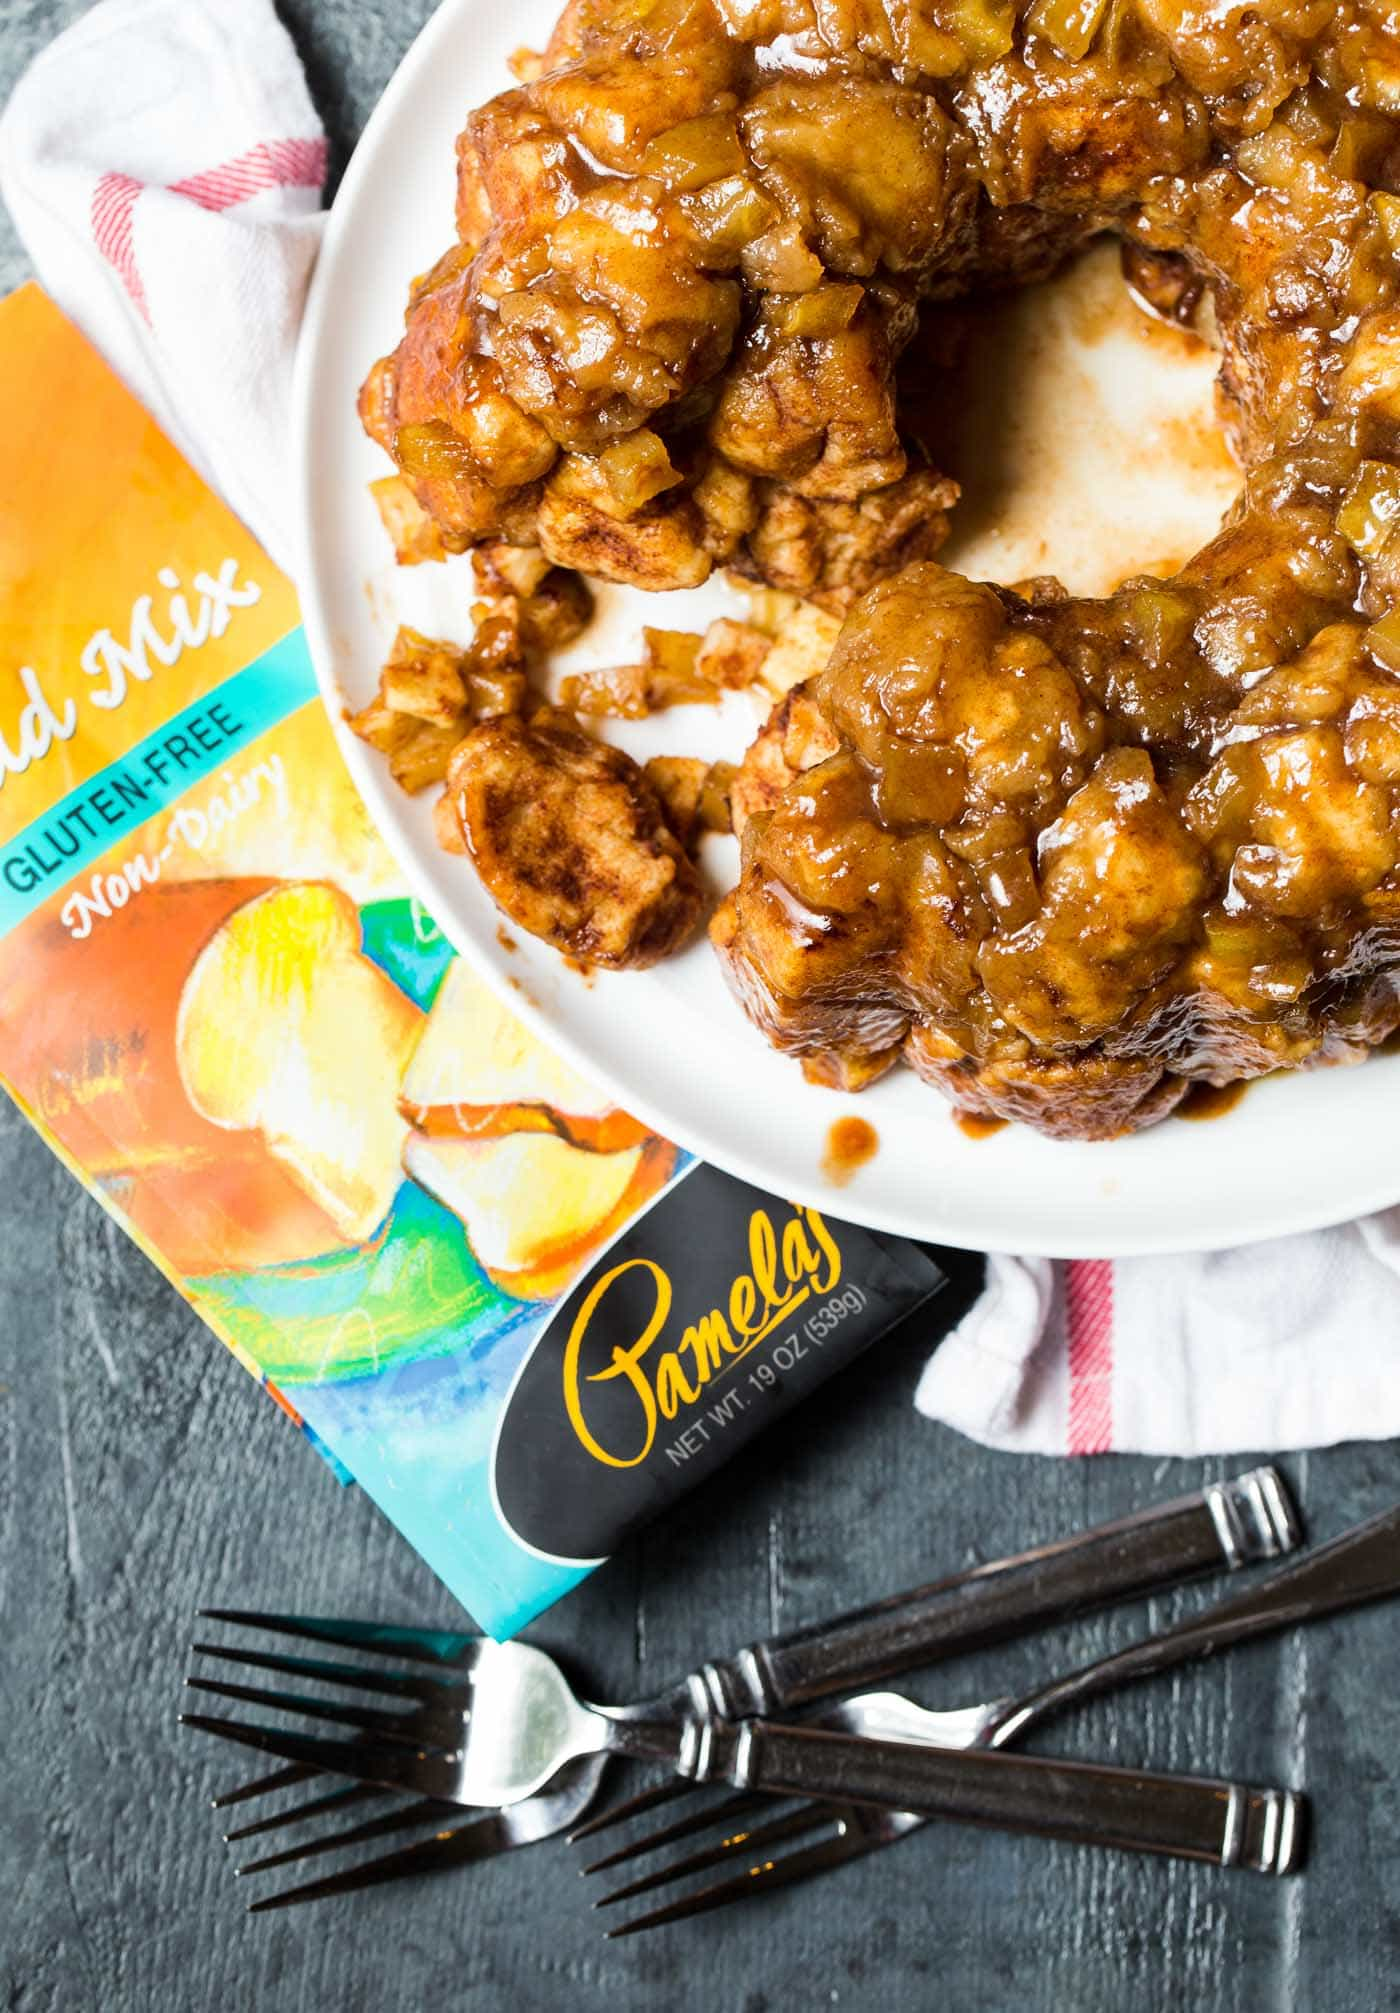 Don't be intimidated by gluten-free baking. This reliable recipe for Gluten-Free Caramel Apple Monkey Bread tastes as amazing as it looks!